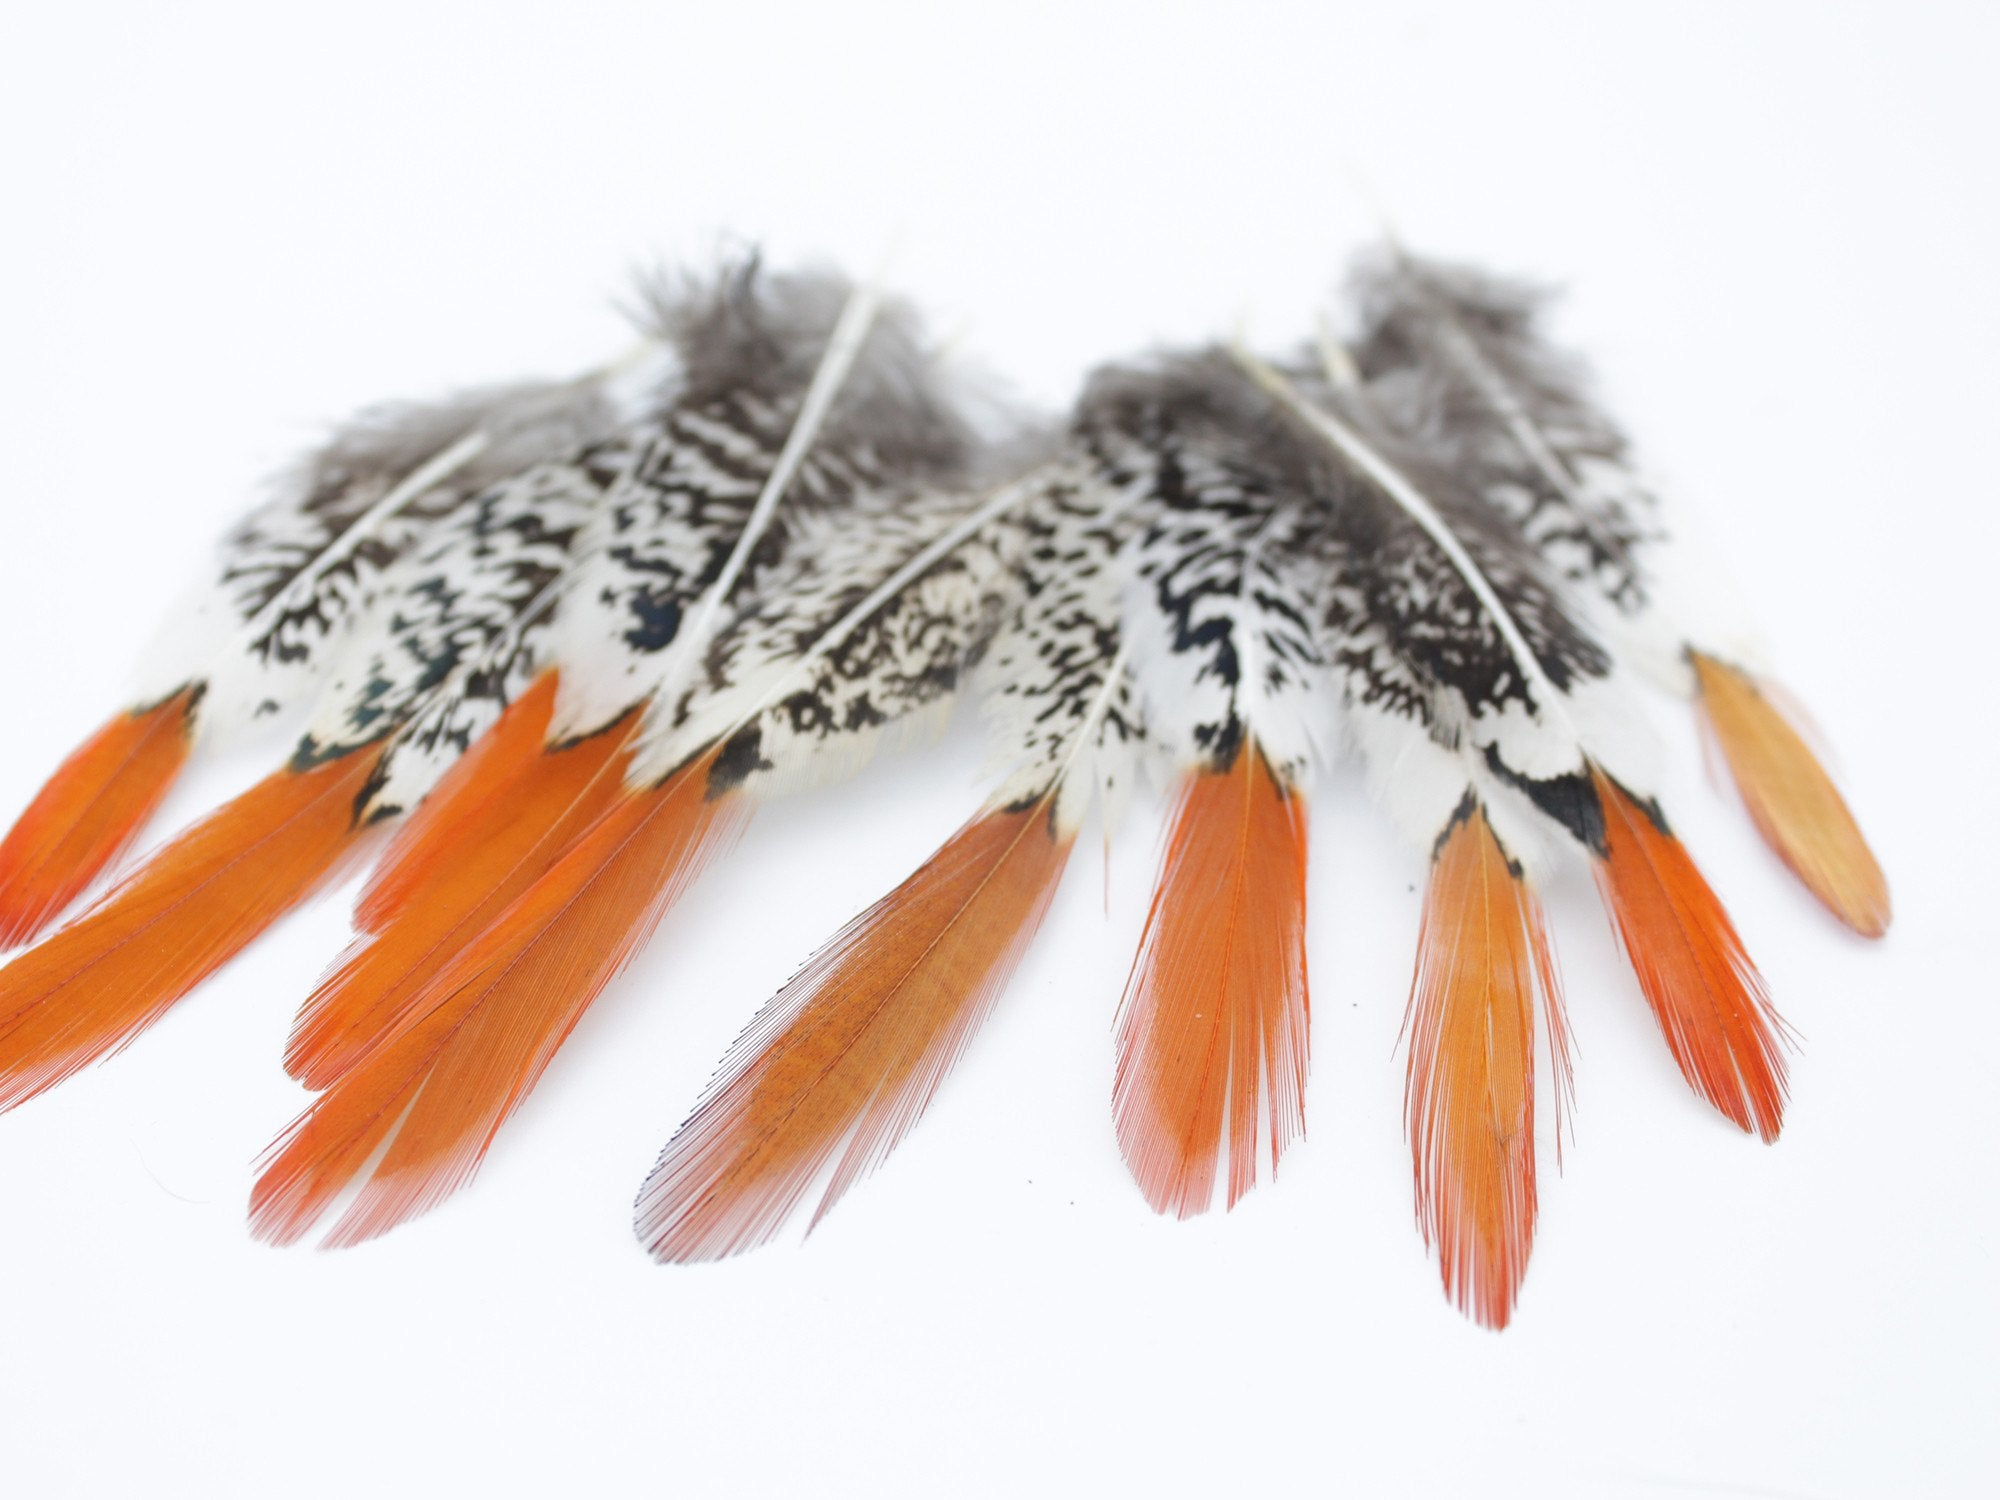 How to clean pheasant feathers - Lady Amherst Pheasant Orange Tipped Feathers